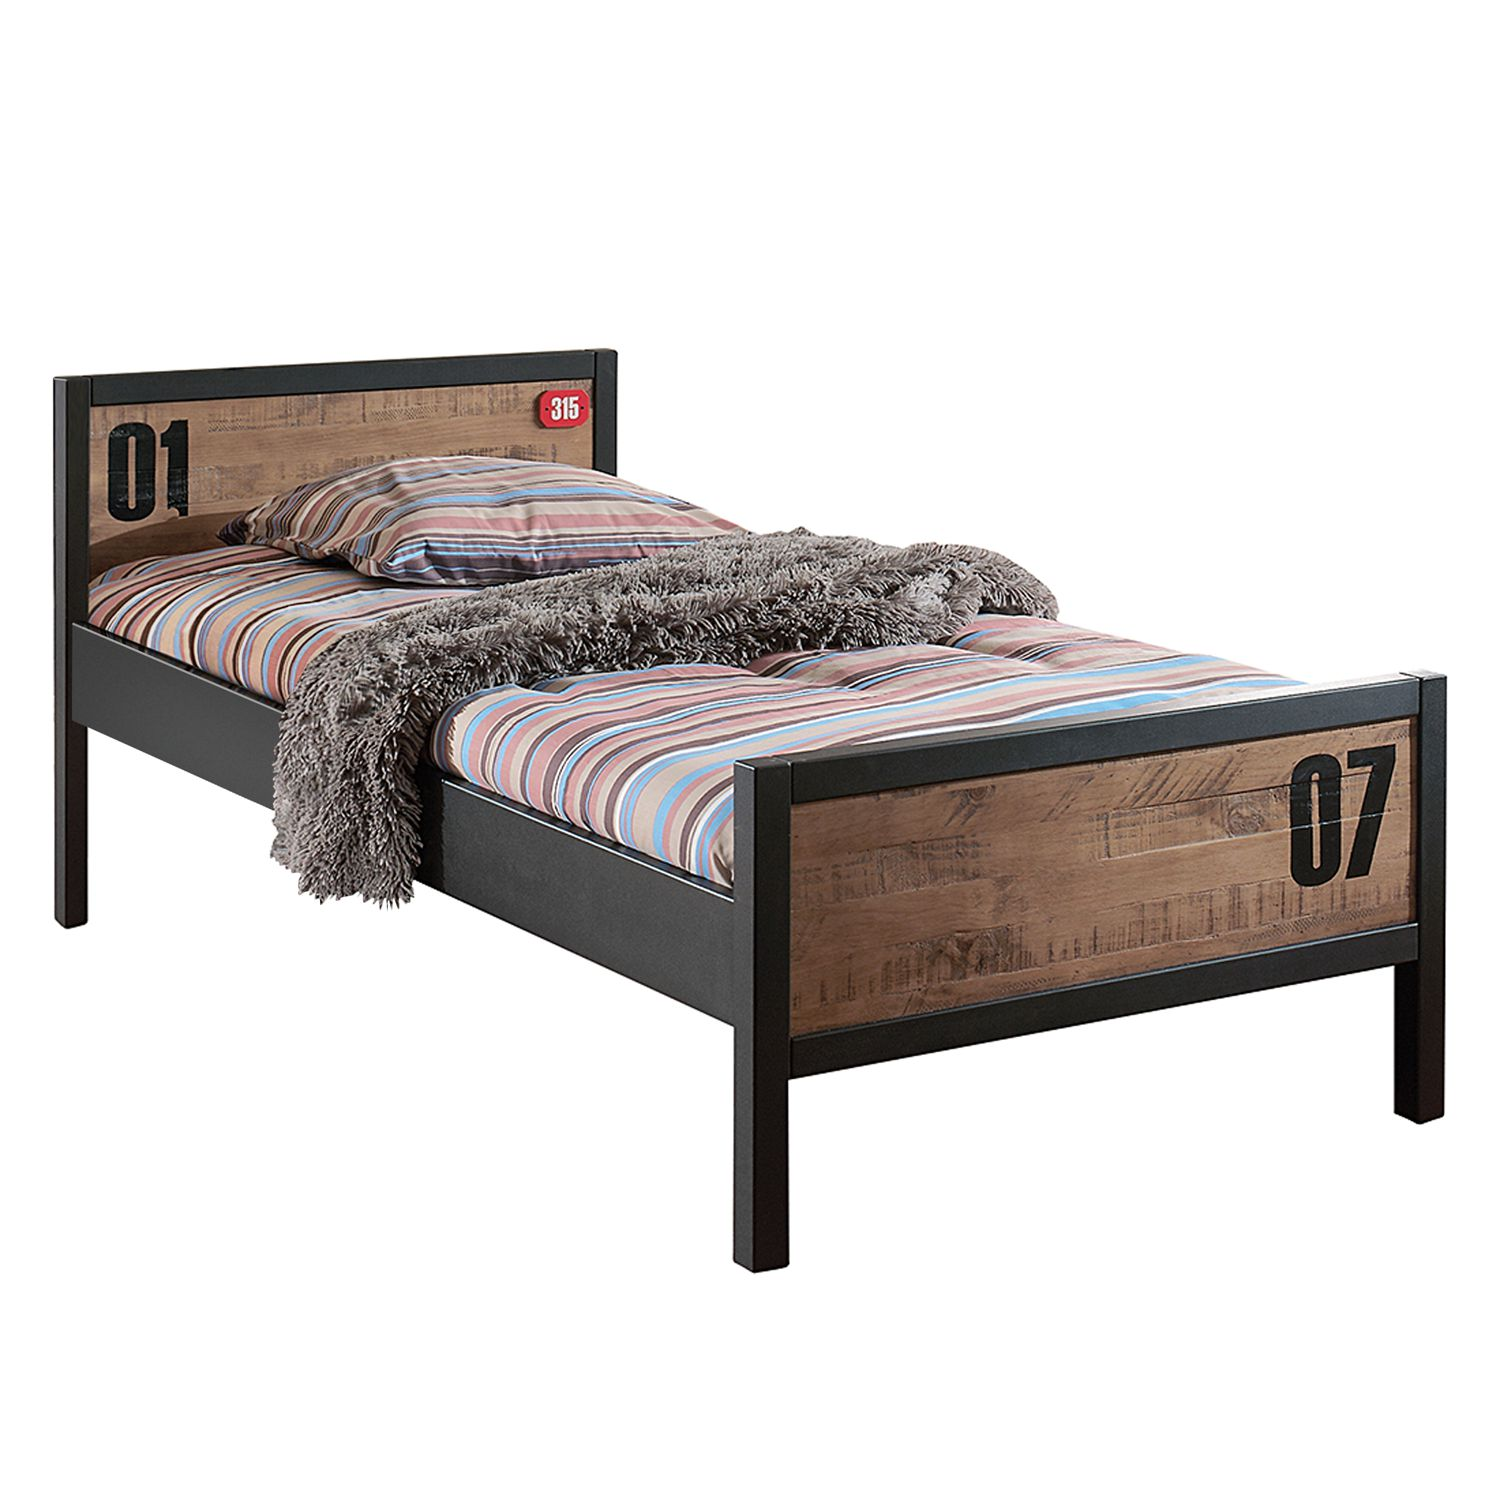 einzelbett mit bettkasten neuesten design kollektionen f r die familien. Black Bedroom Furniture Sets. Home Design Ideas